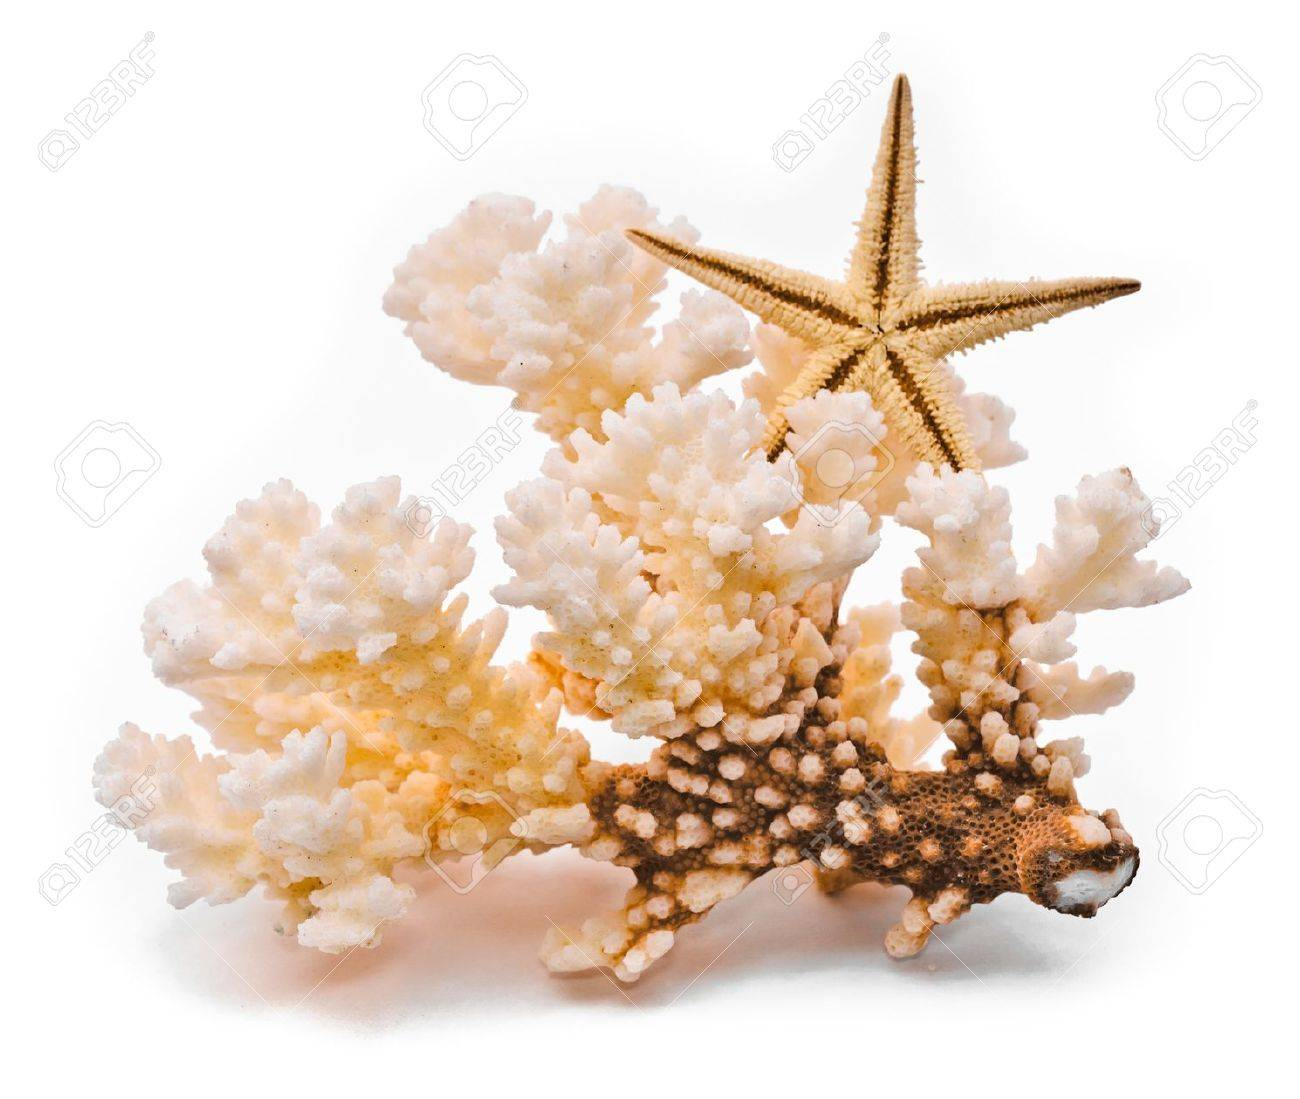 White coral and starfish. Isolated on white background - 9672119